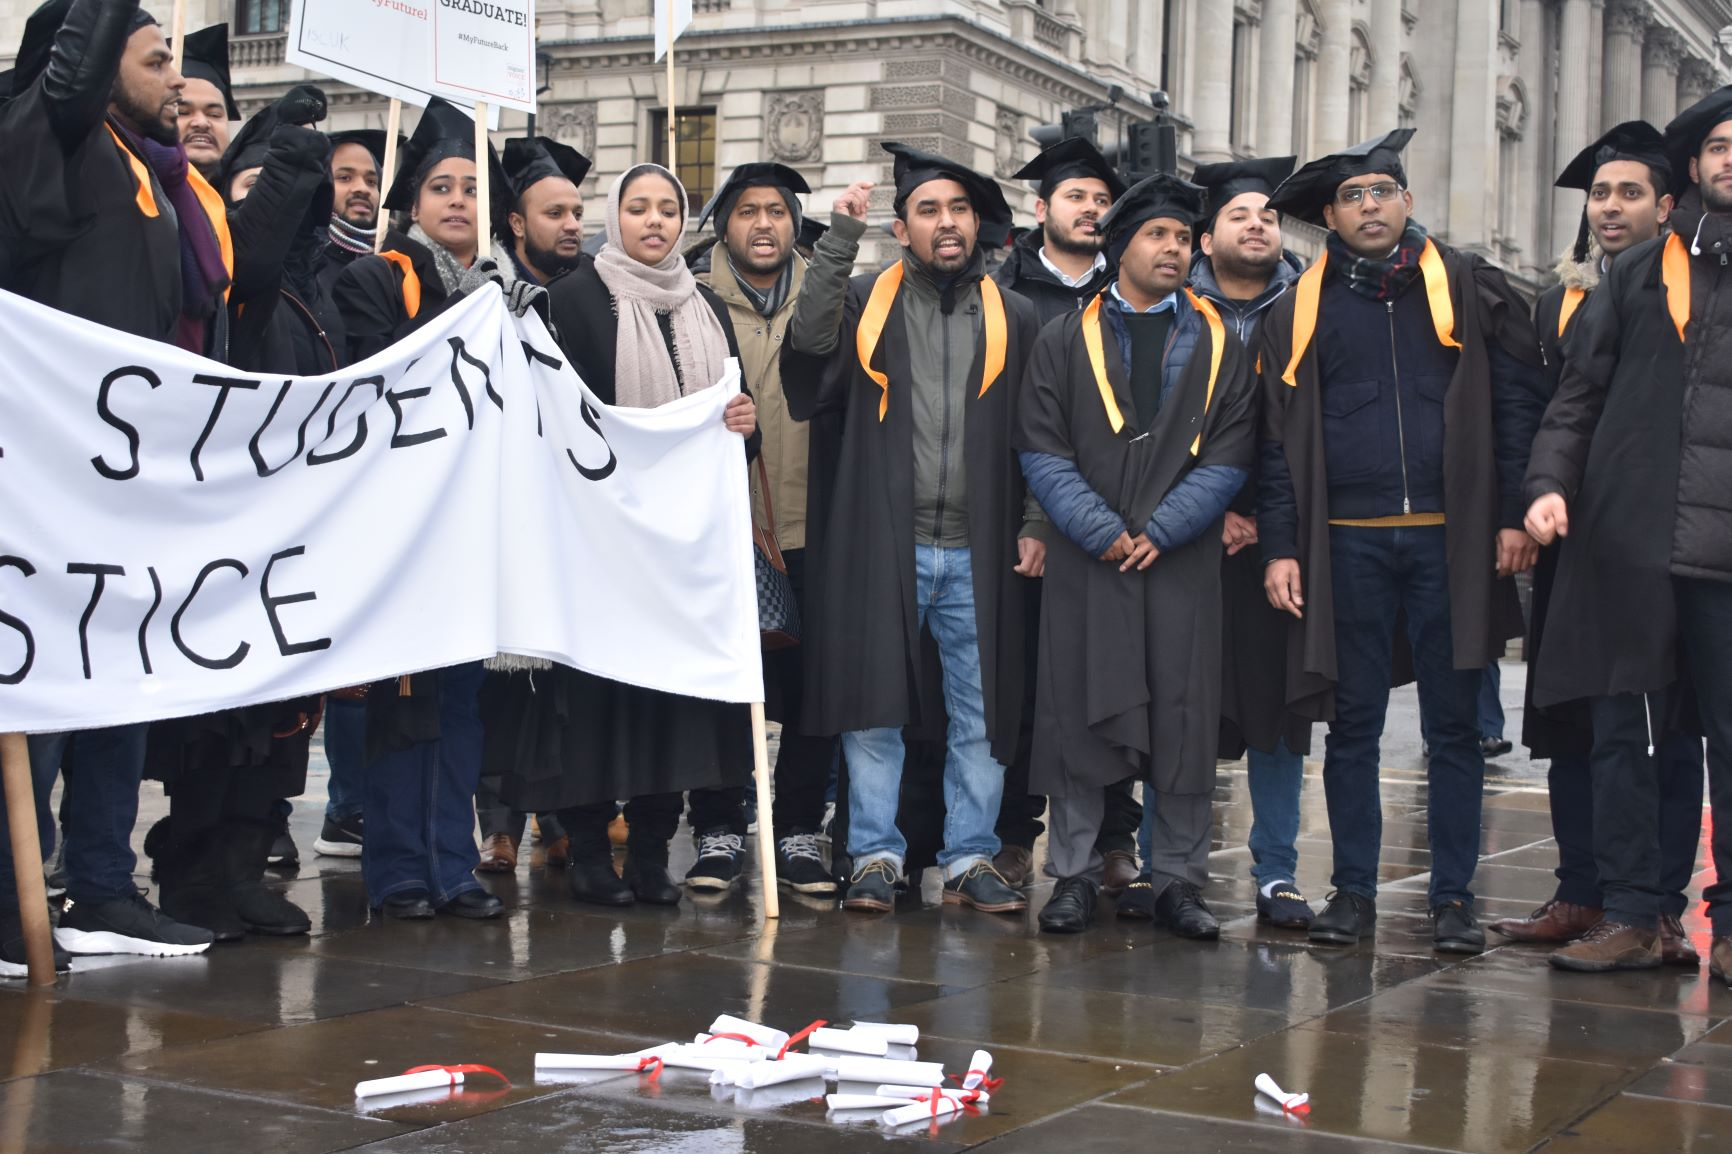 five years in limbo international students go to westminster to call for justice